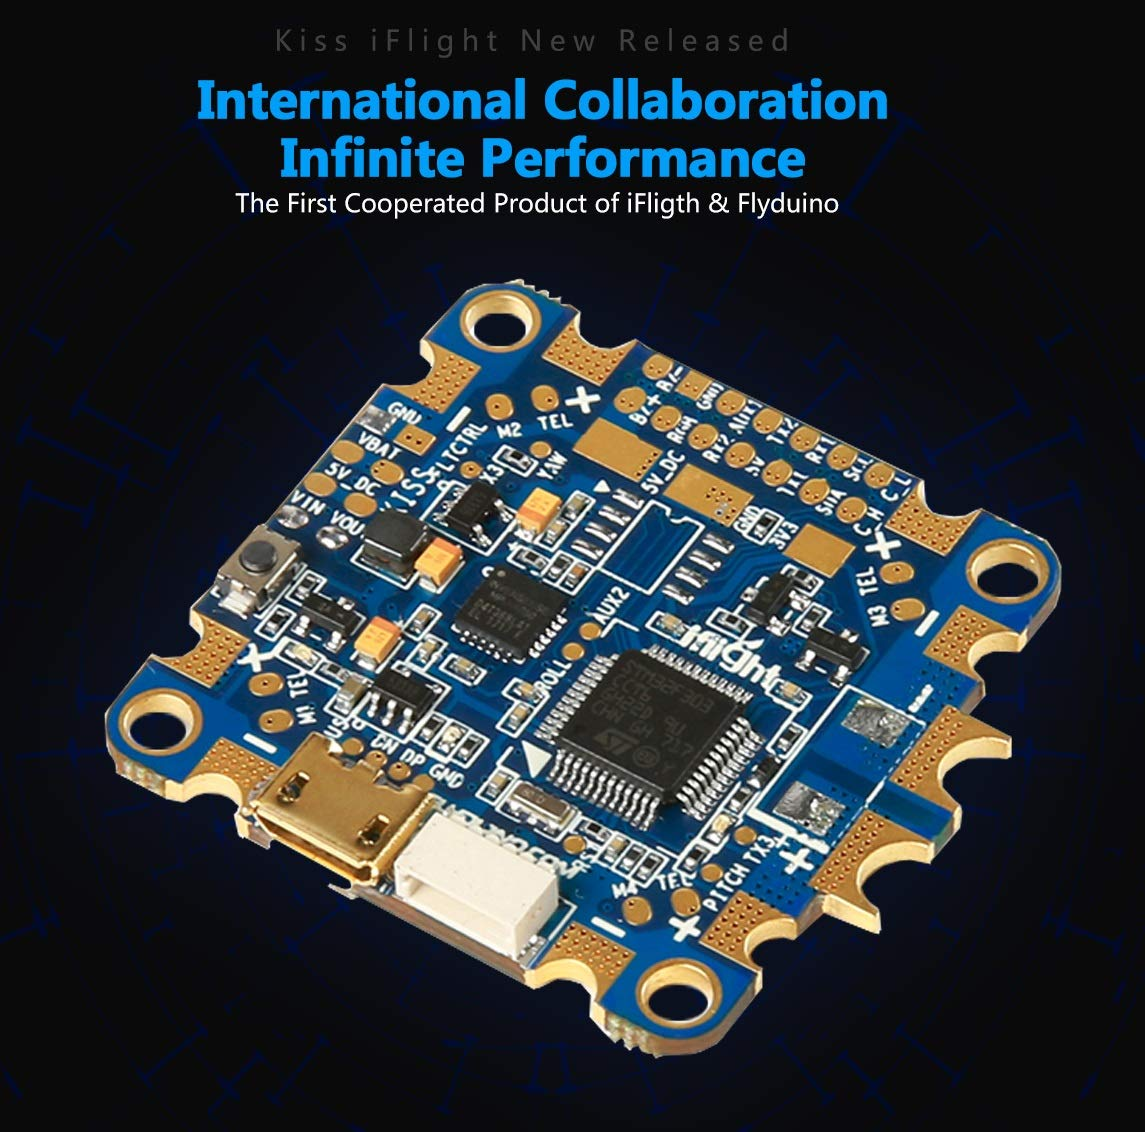 Kiss Iflight Flyduino Licensed Aio Flight Diy Make A Circuit Board Fly With This Cute Tiny Quadcopter Kit Controller Fc Integrated Osd For Fpv Racing Drone Toys Games